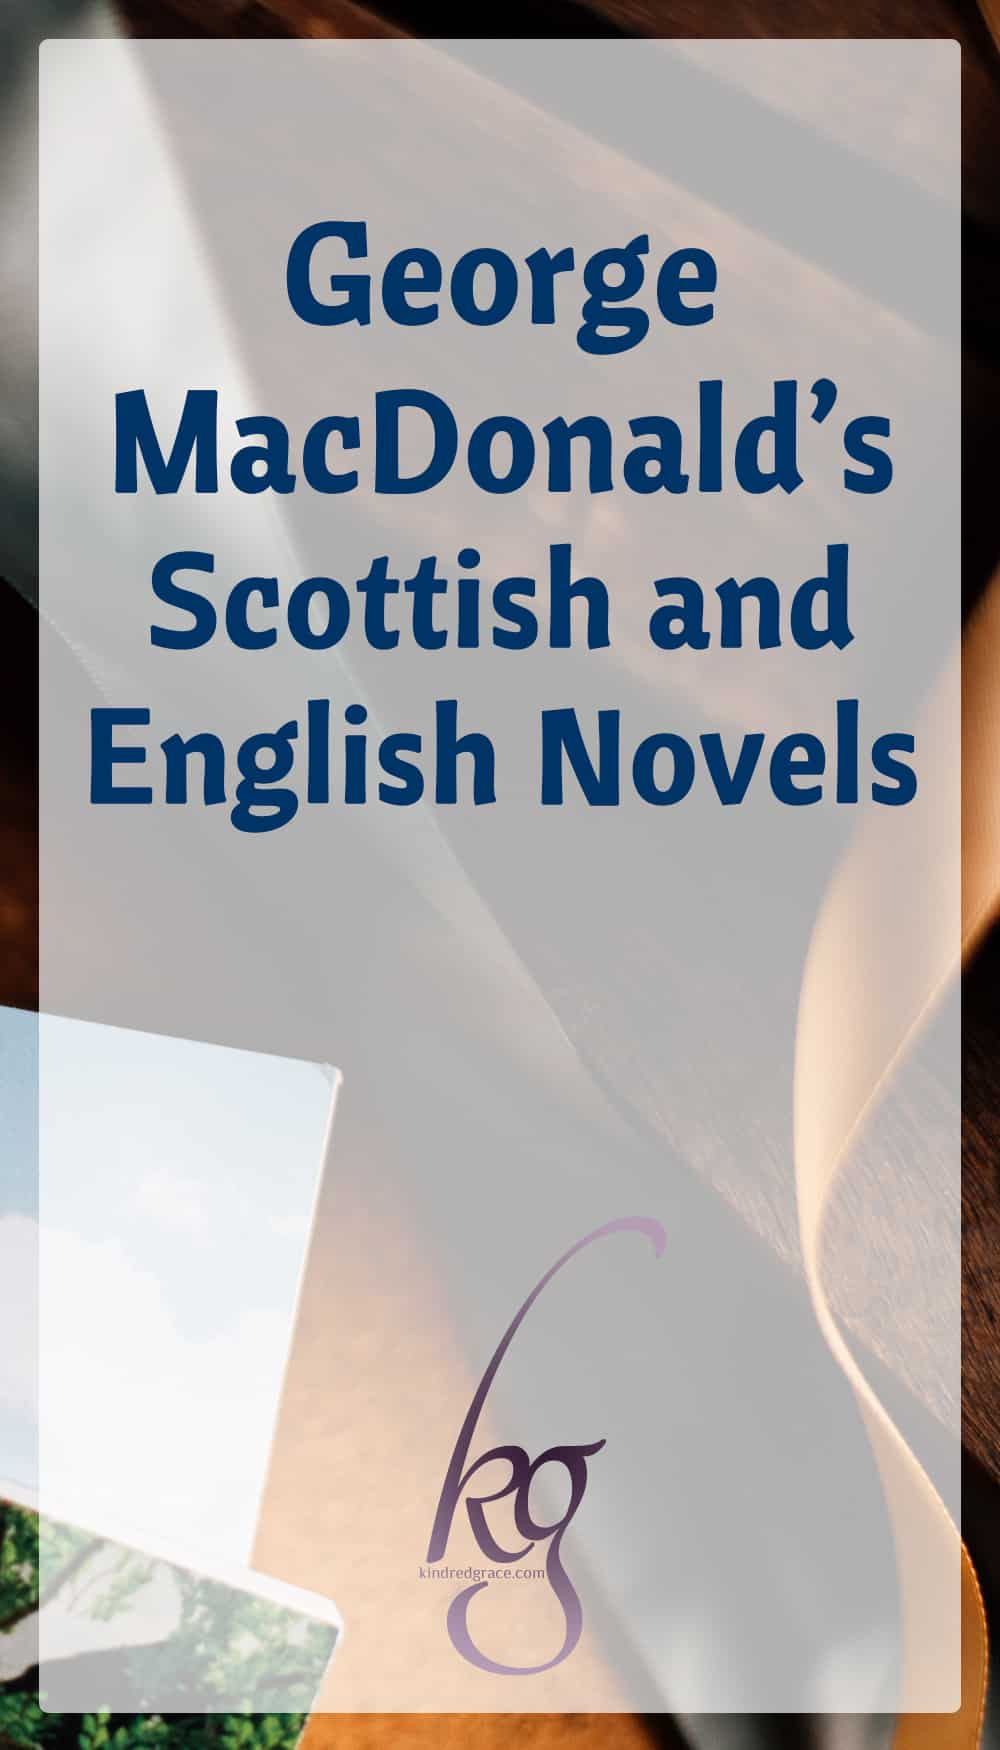 George MacDonald's Fantasy, Scottish Fiction, and English Fiction via @KindredGrace